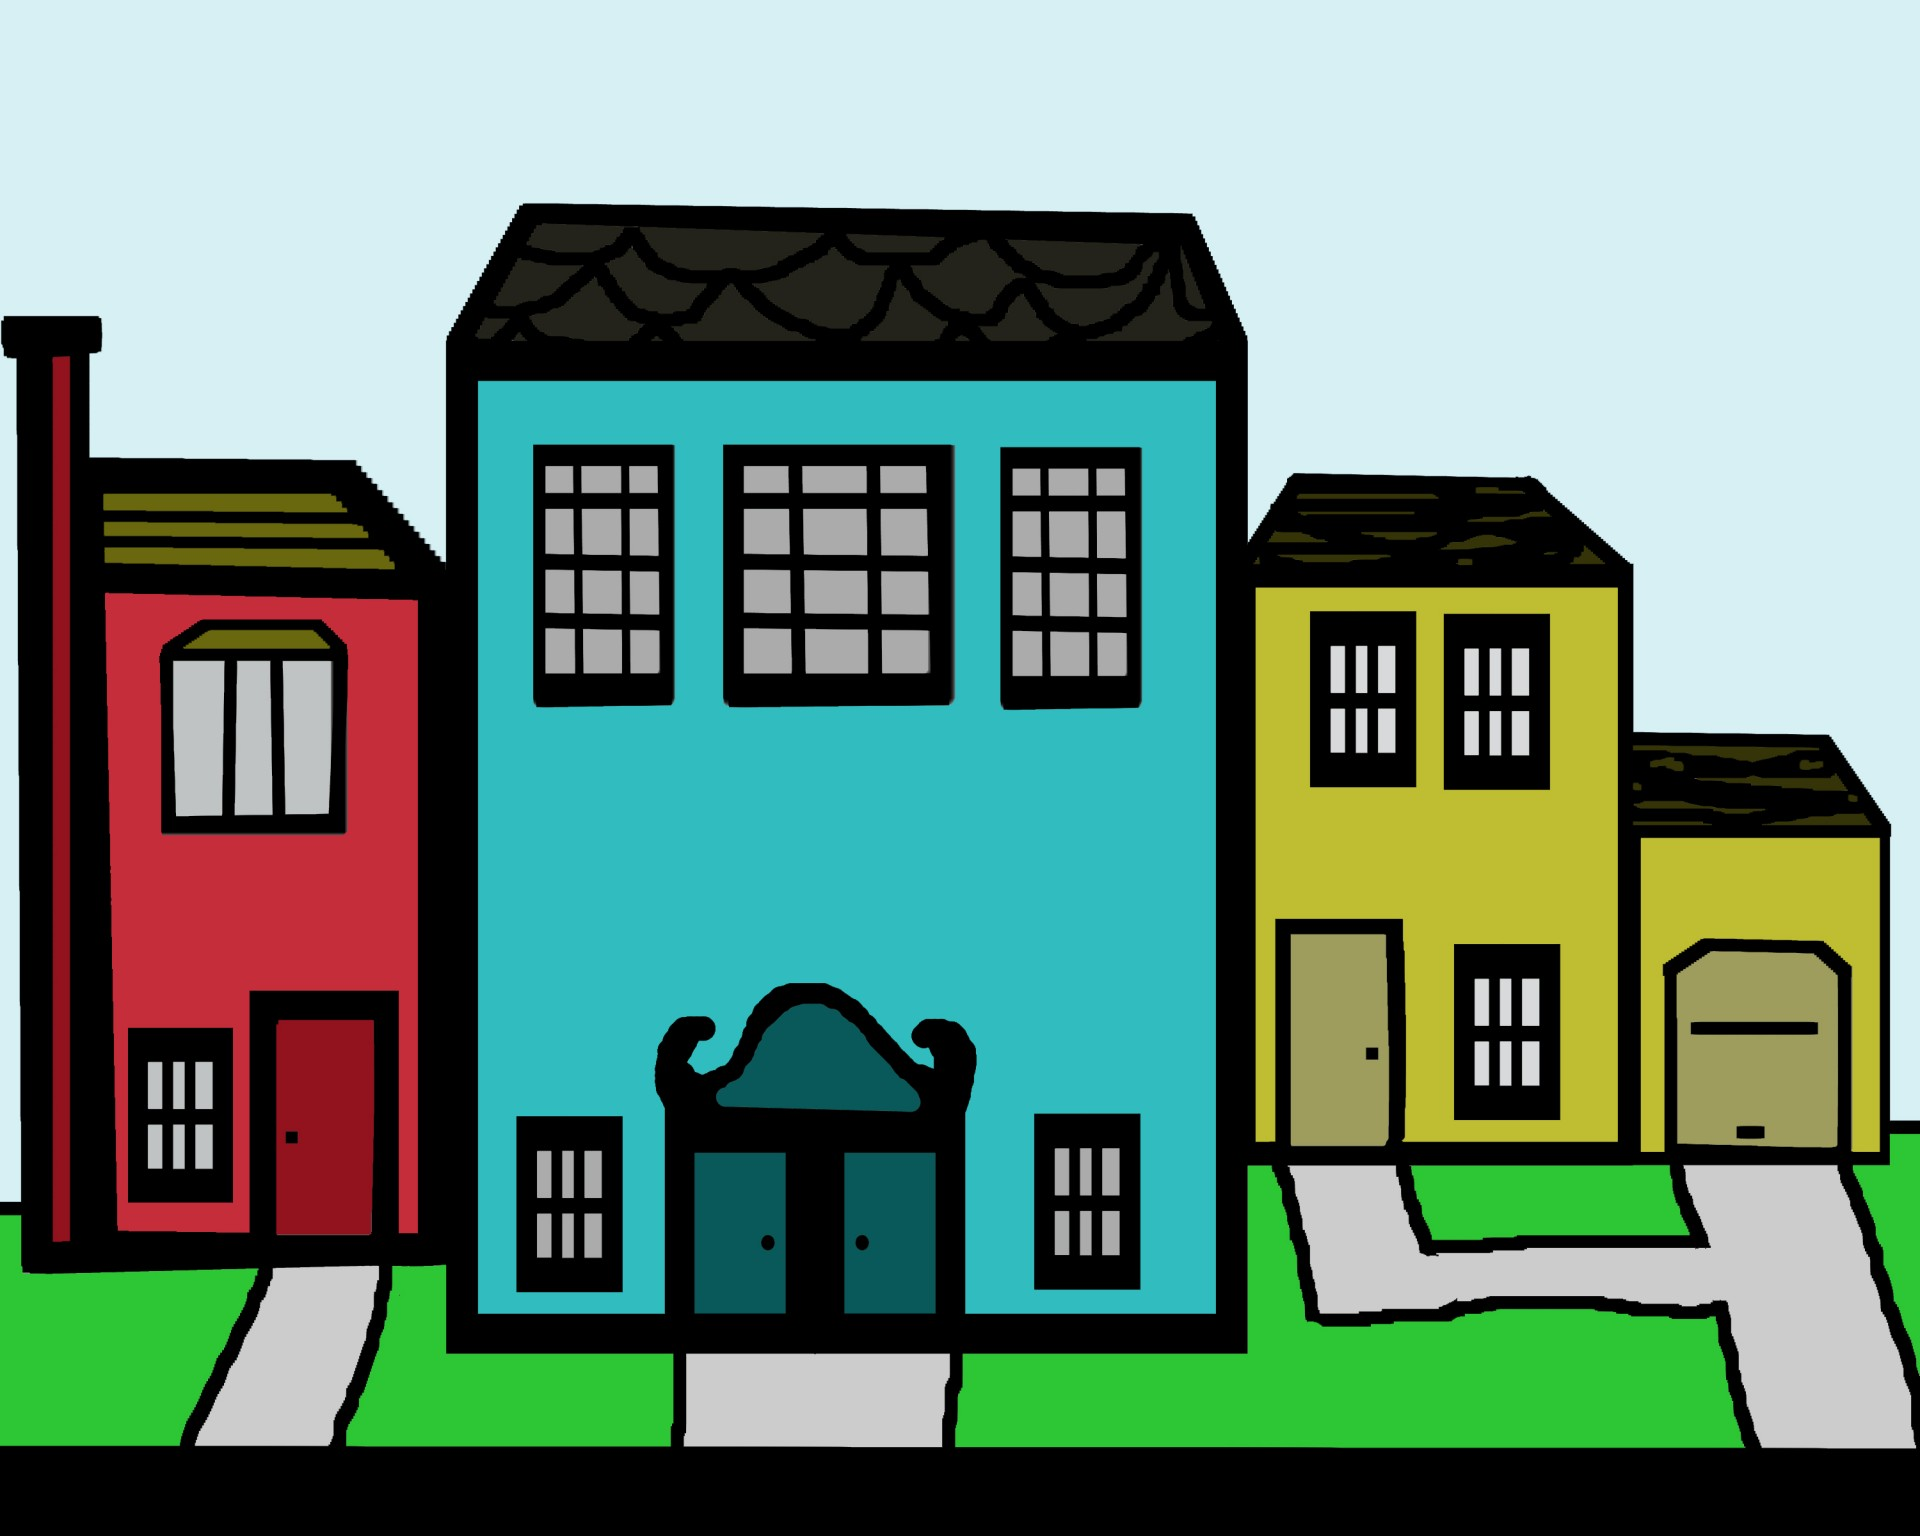 Neighborhood clipart. Clip art free stock